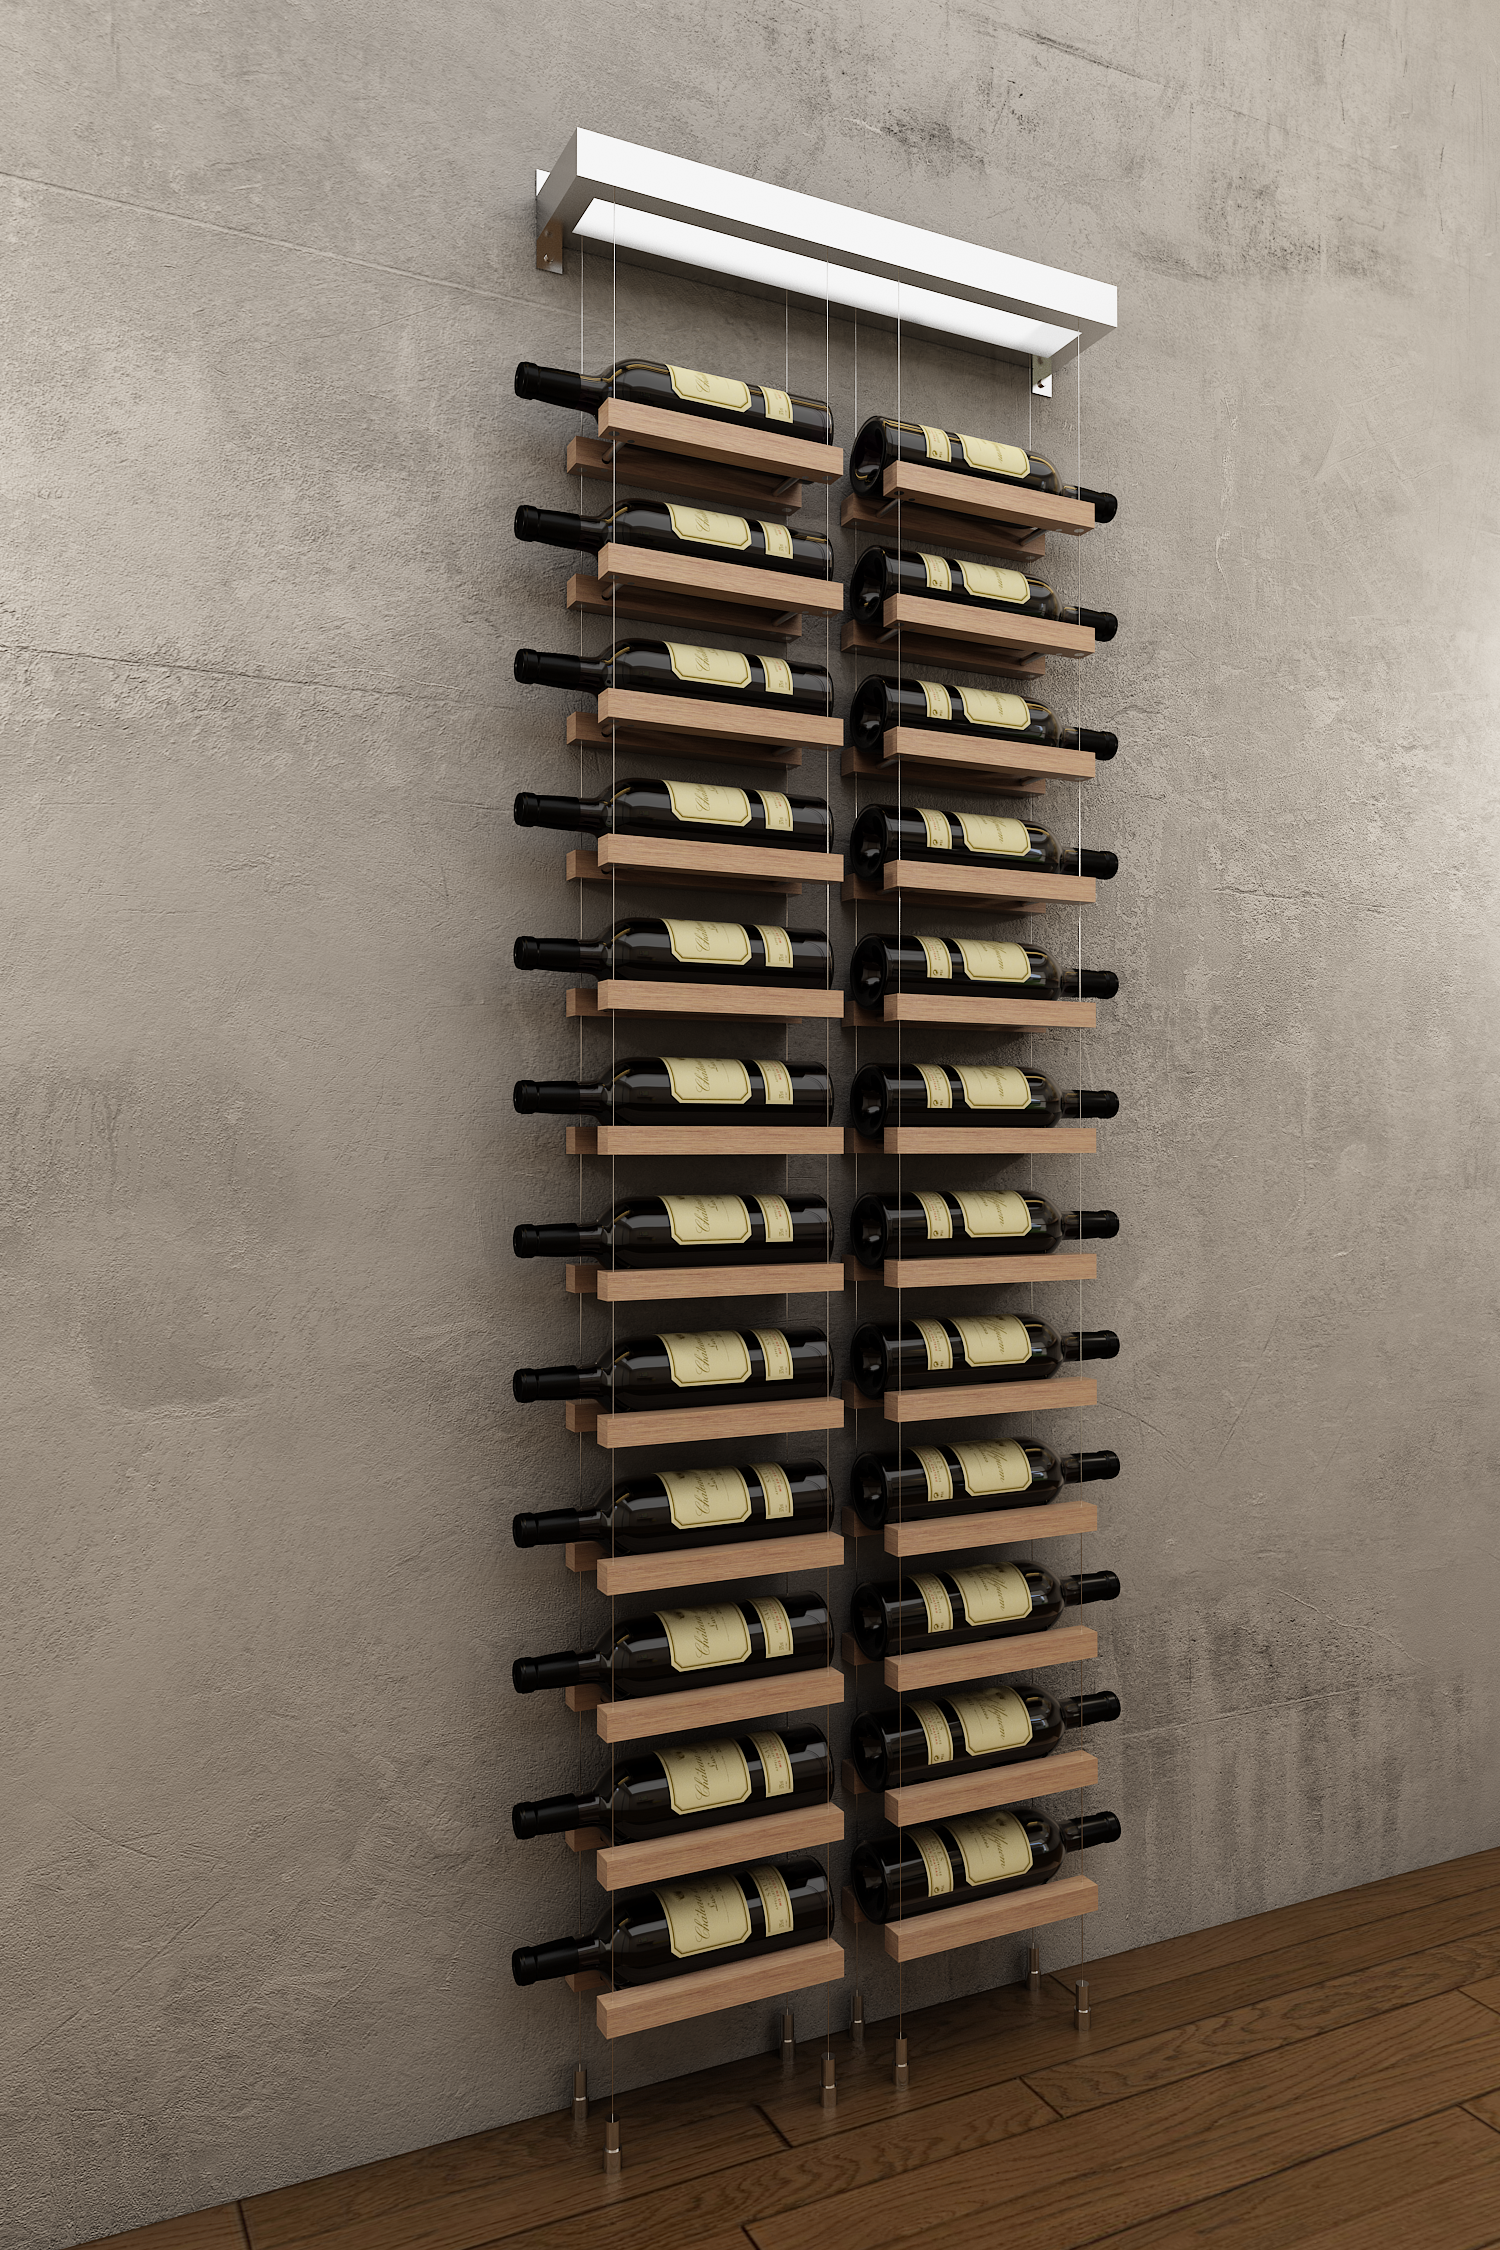 Wm2l1 Chrome Wall Mounted Wine Rack Modern Wine Rack Wine Rack Storage